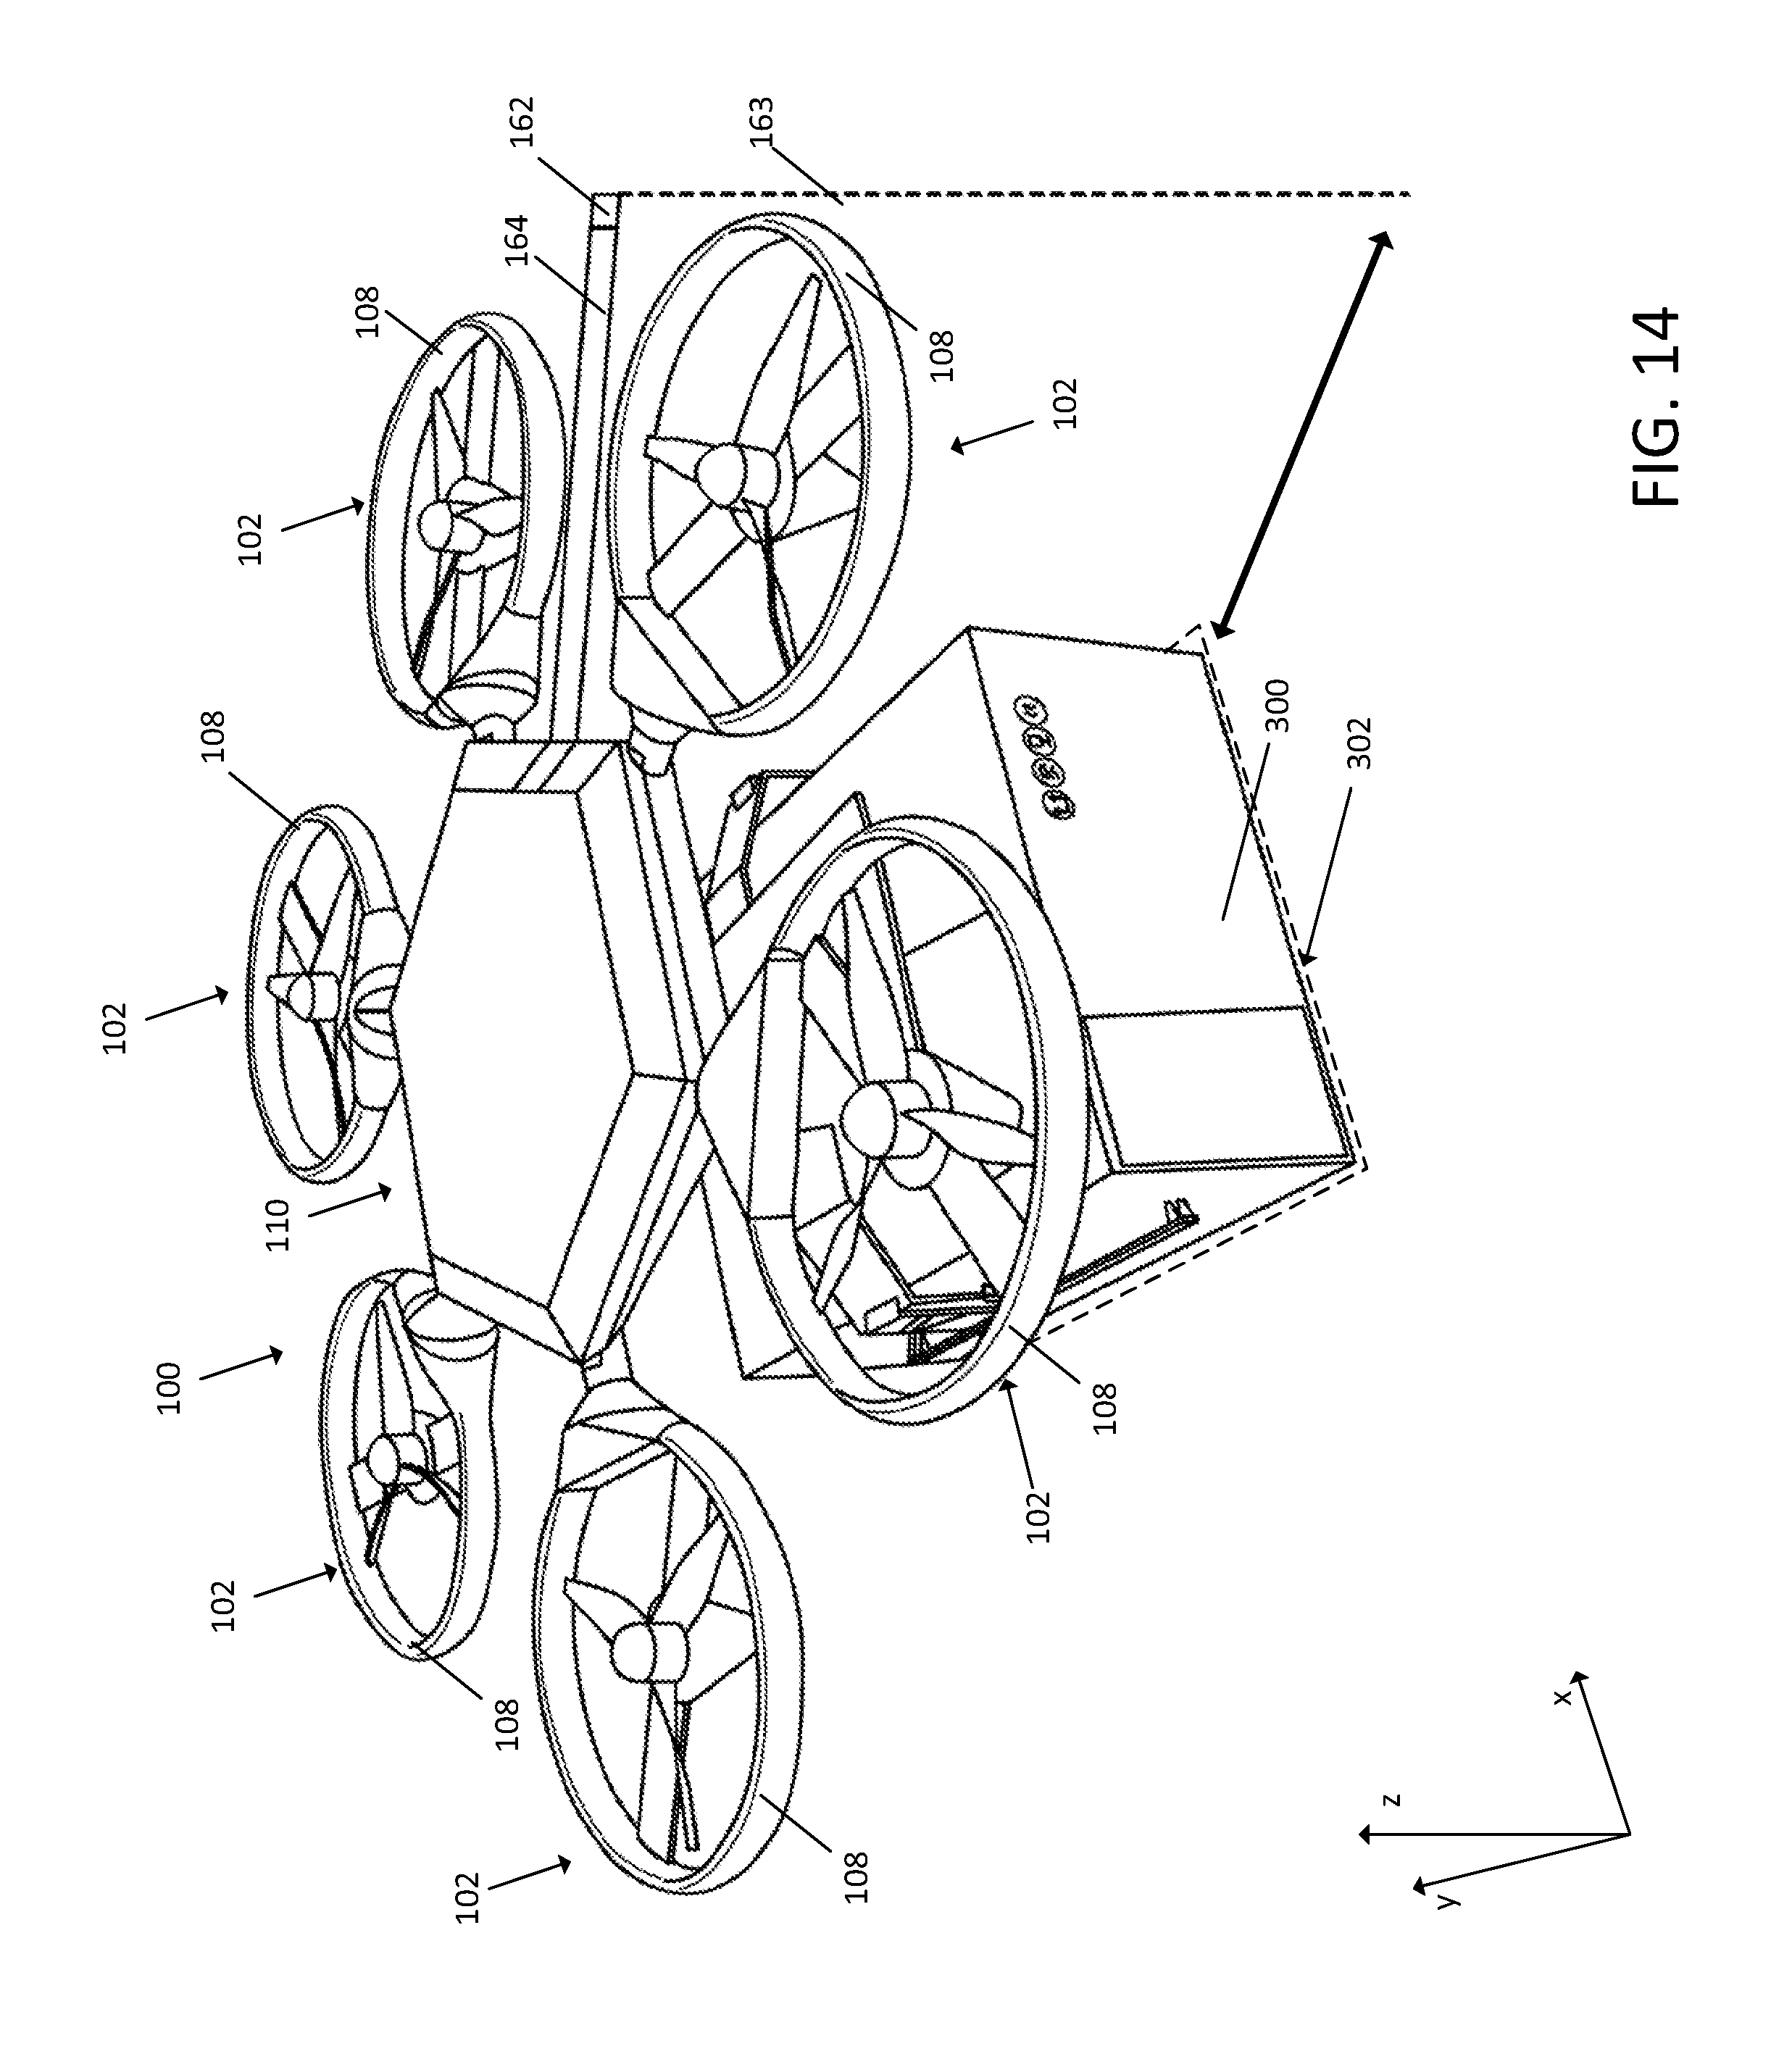 patent us 9 981 745 b2 GM Wiring Diagrams 1998 Chevy Truck patent images